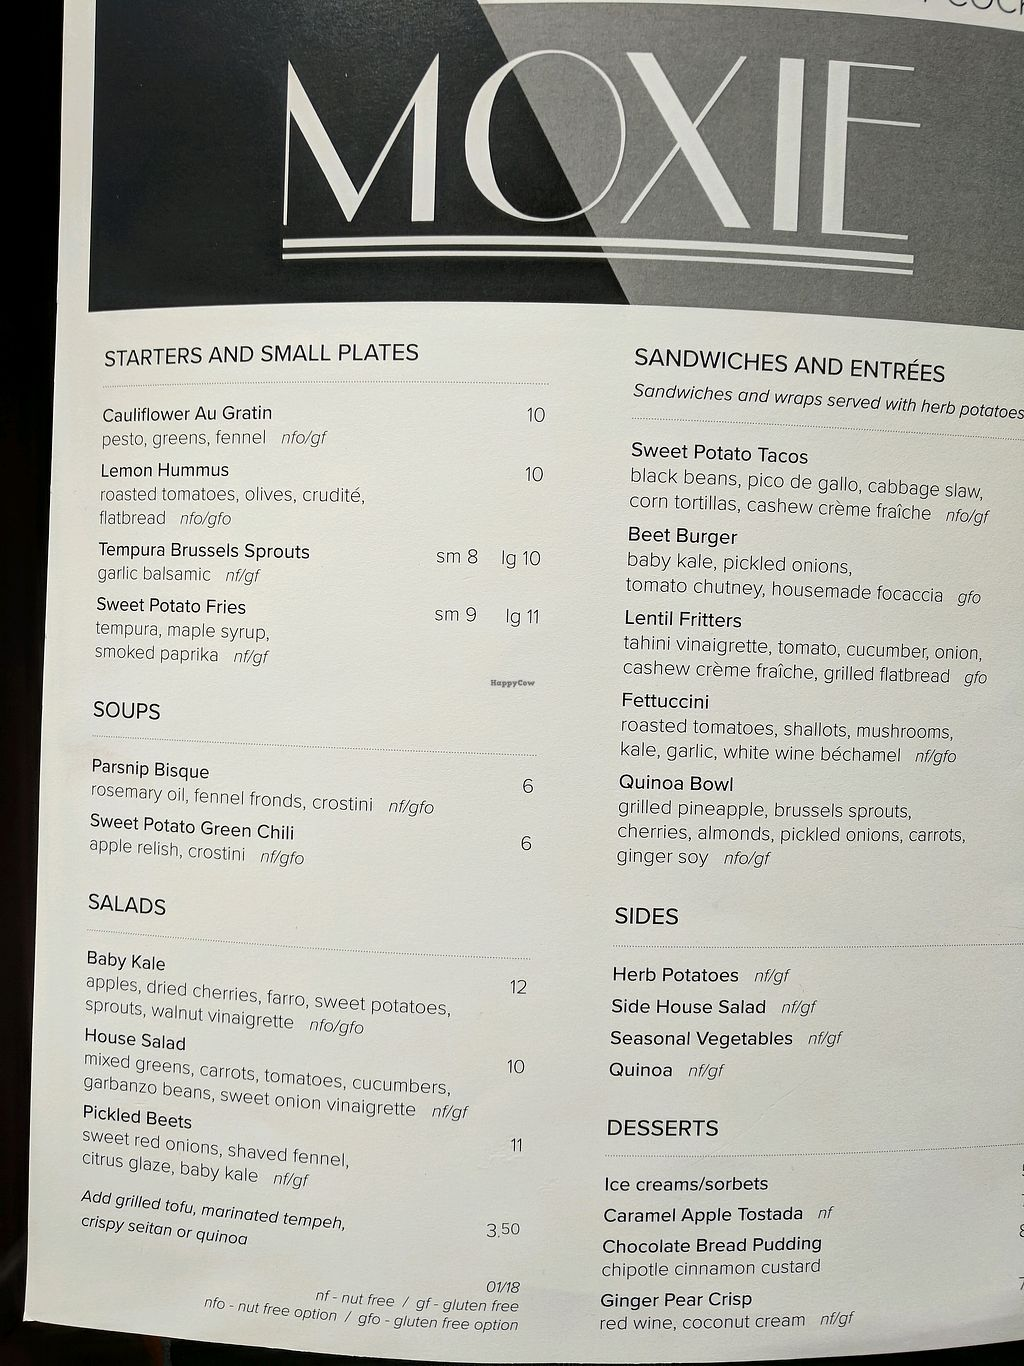 """Photo of Moxie  by <a href=""""/members/profile/zenmaestro"""">zenmaestro</a> <br/>lunch menu <br/> January 25, 2018  - <a href='/contact/abuse/image/108879/350897'>Report</a>"""